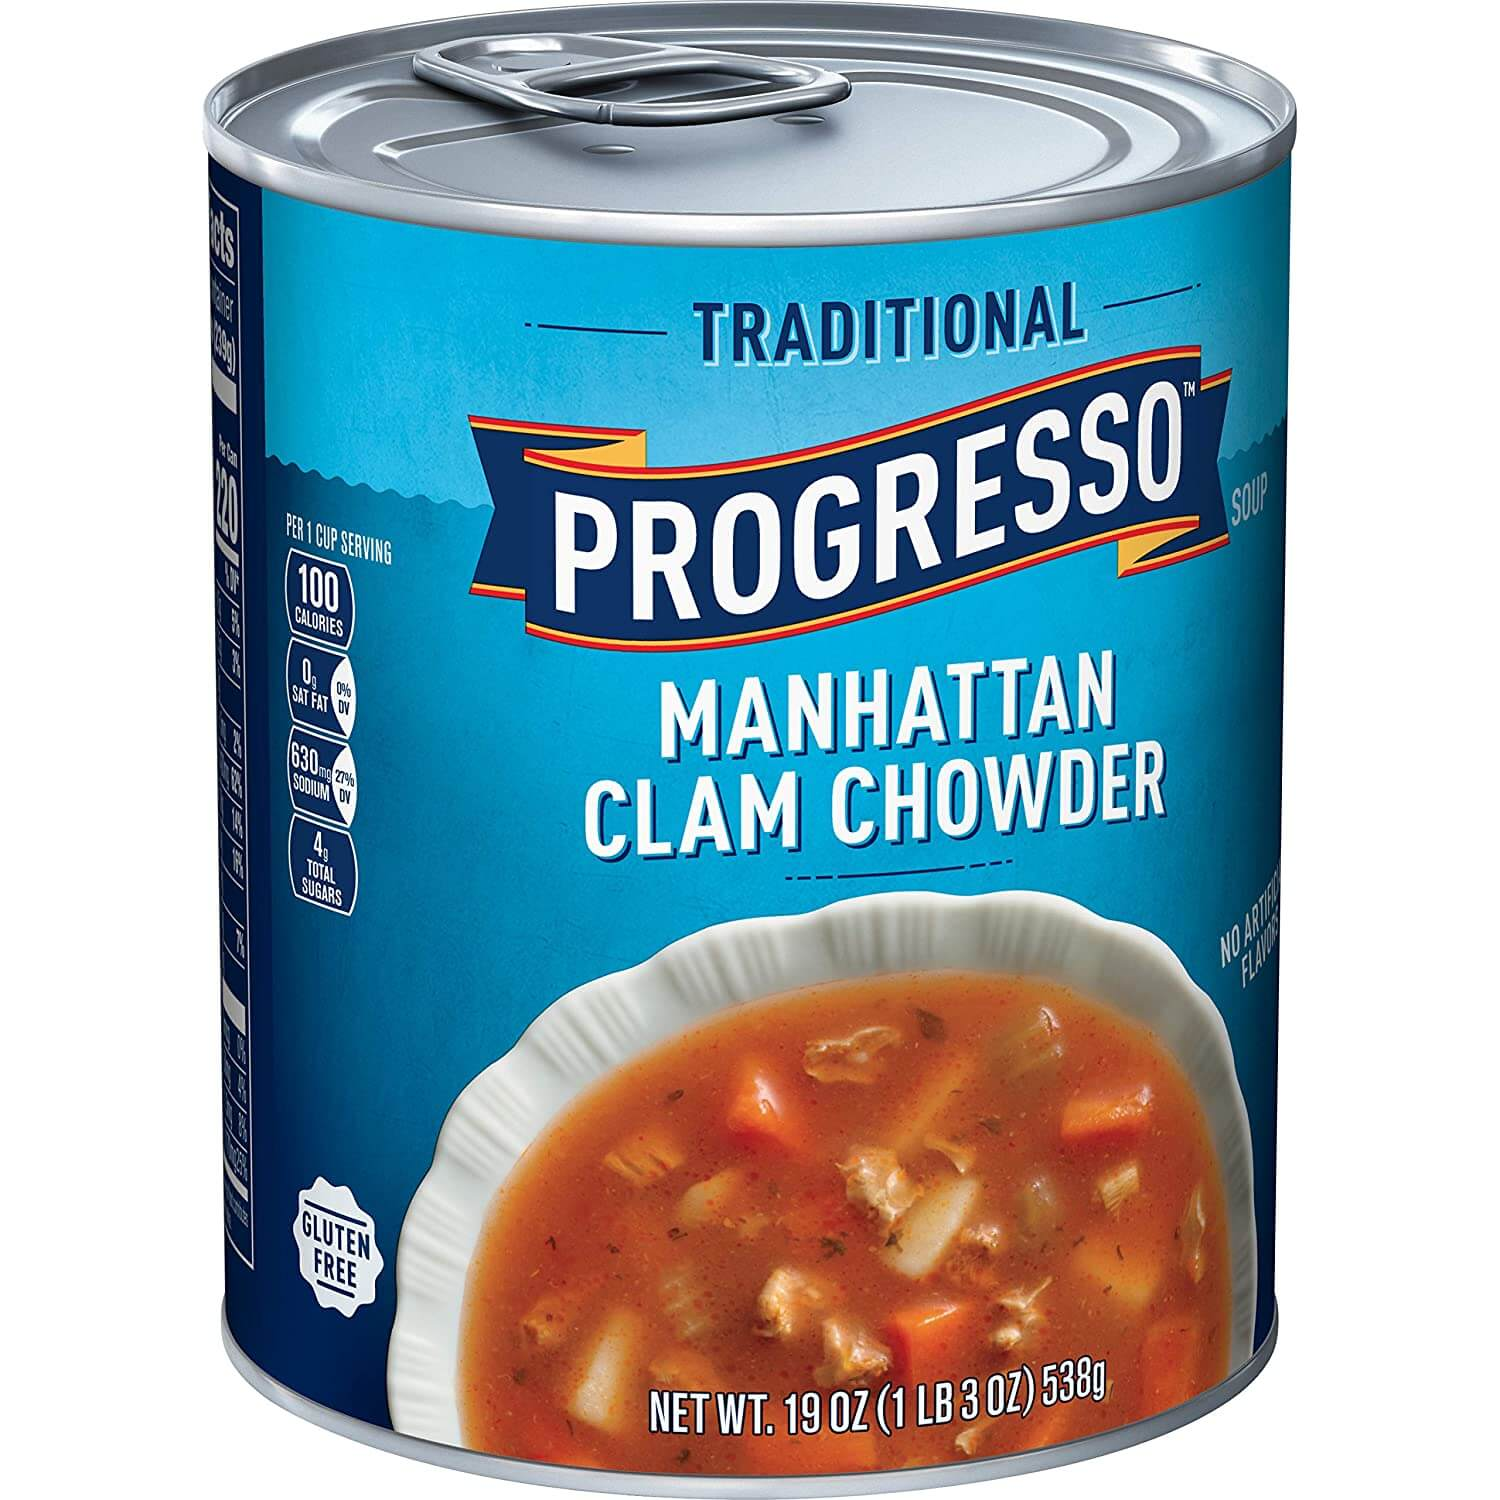 Progresso Traditional Manhattan Clam Chowder